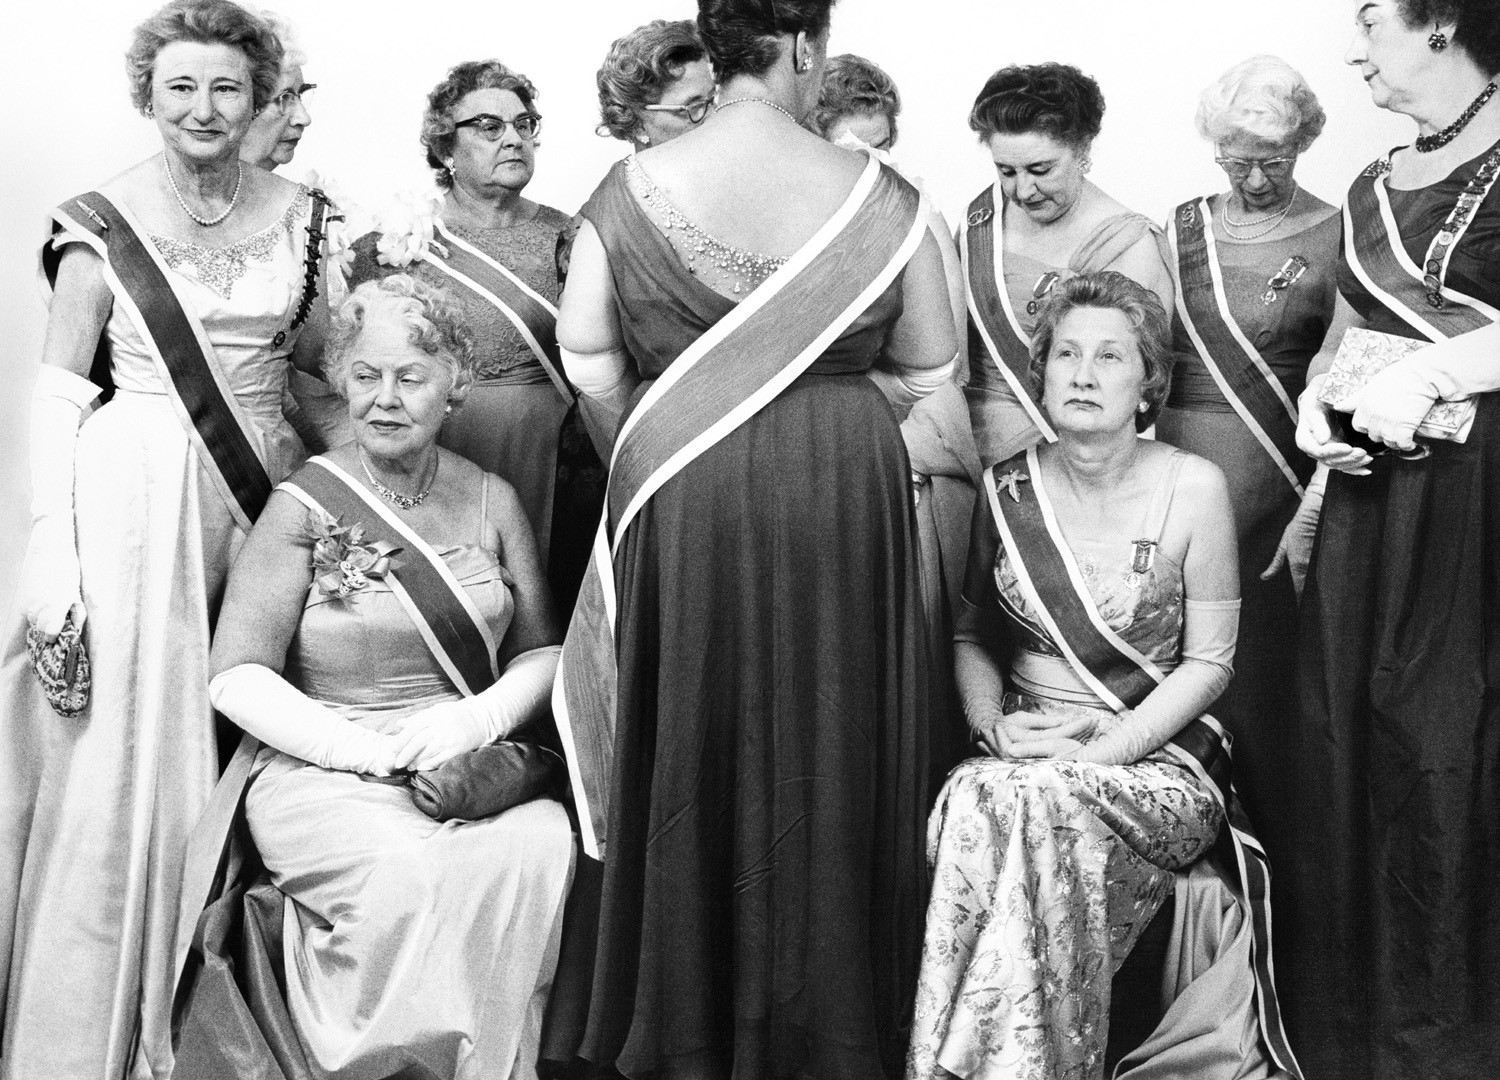 Richard Avedon, The Generals of the Daughters of the American Revolution, DAR Convention, Mayflower Hotel, Washington D.C., October 15, 1963